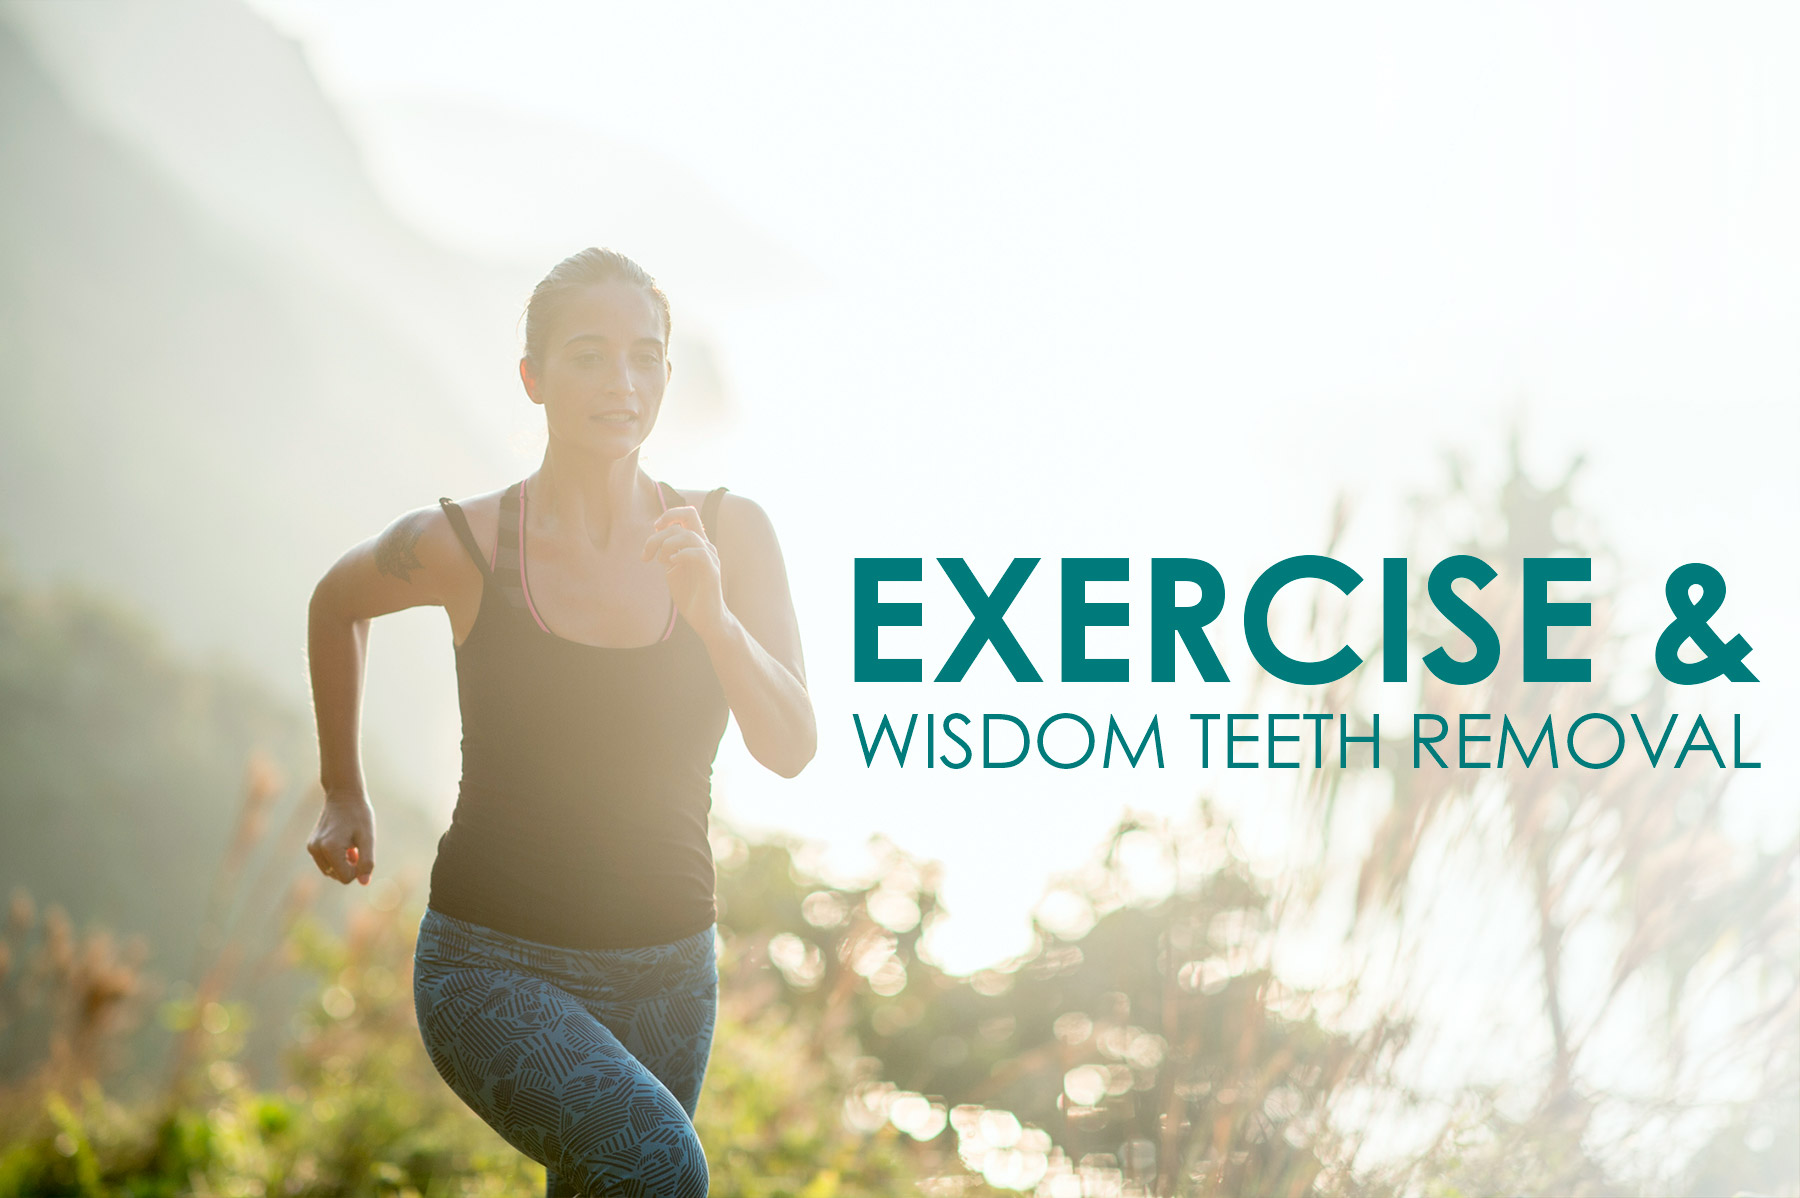 Park Art|My WordPress Blog_How To Get Ready For Wisdom Teeth Removal